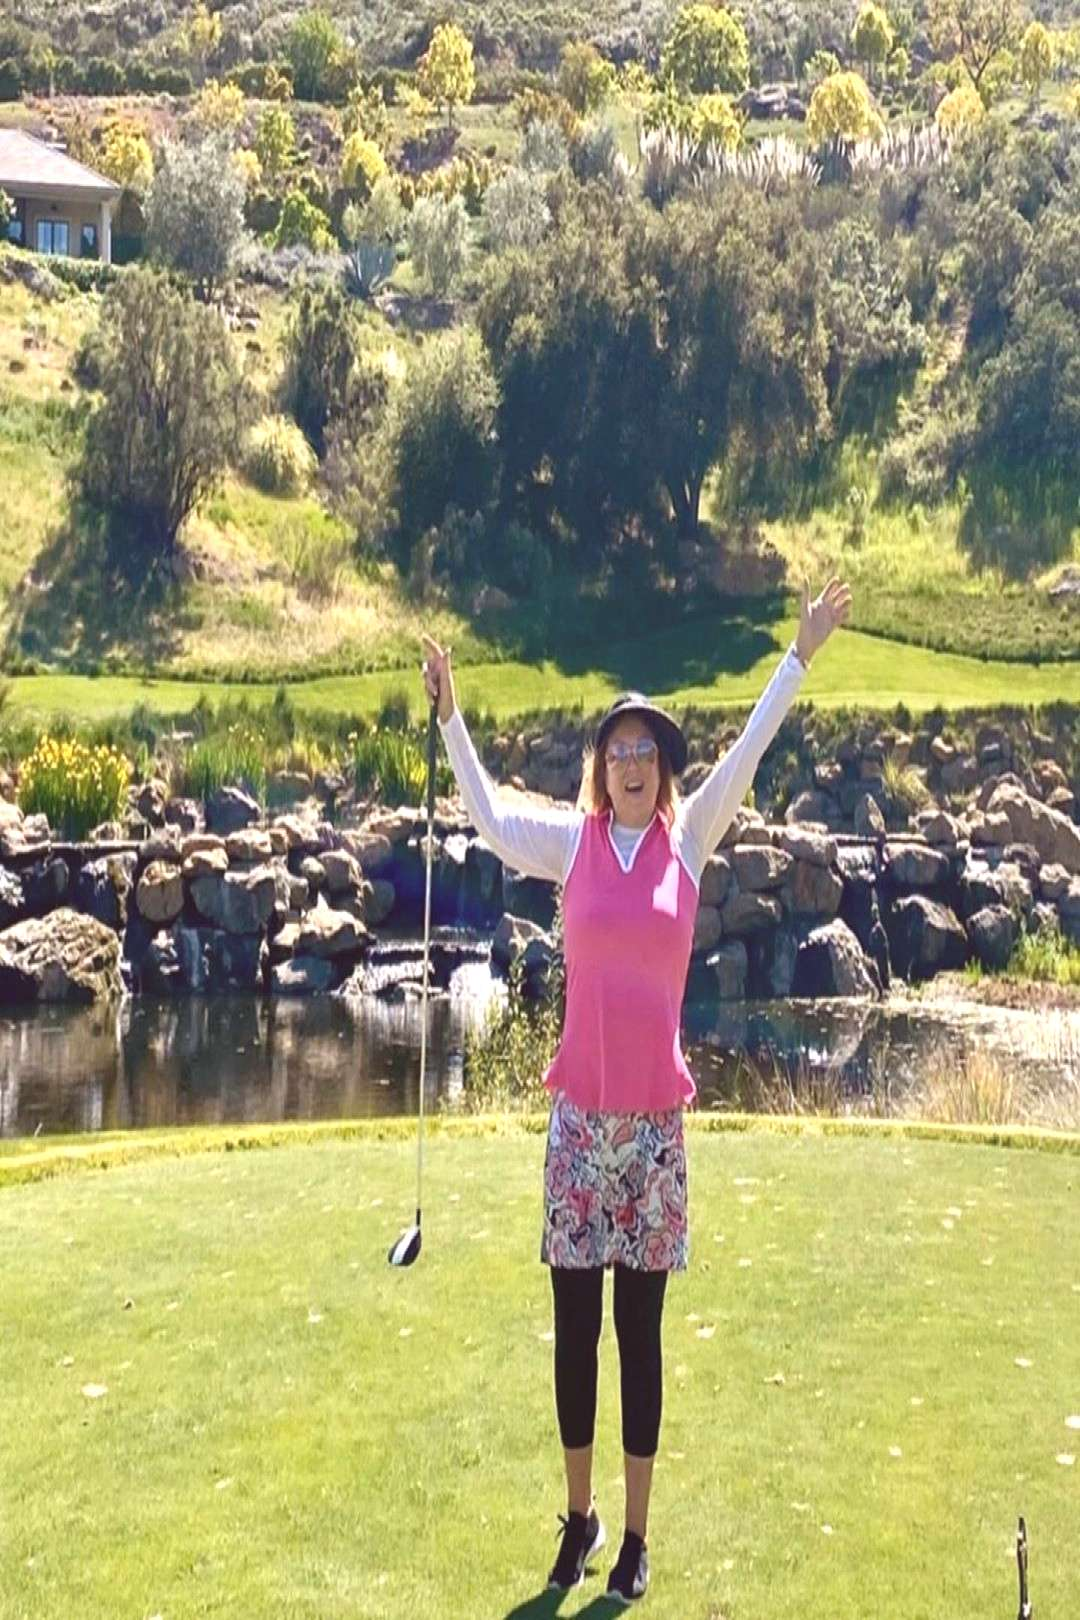 Sherwood CC on April 25 2020 1 person standing mountain grass tre